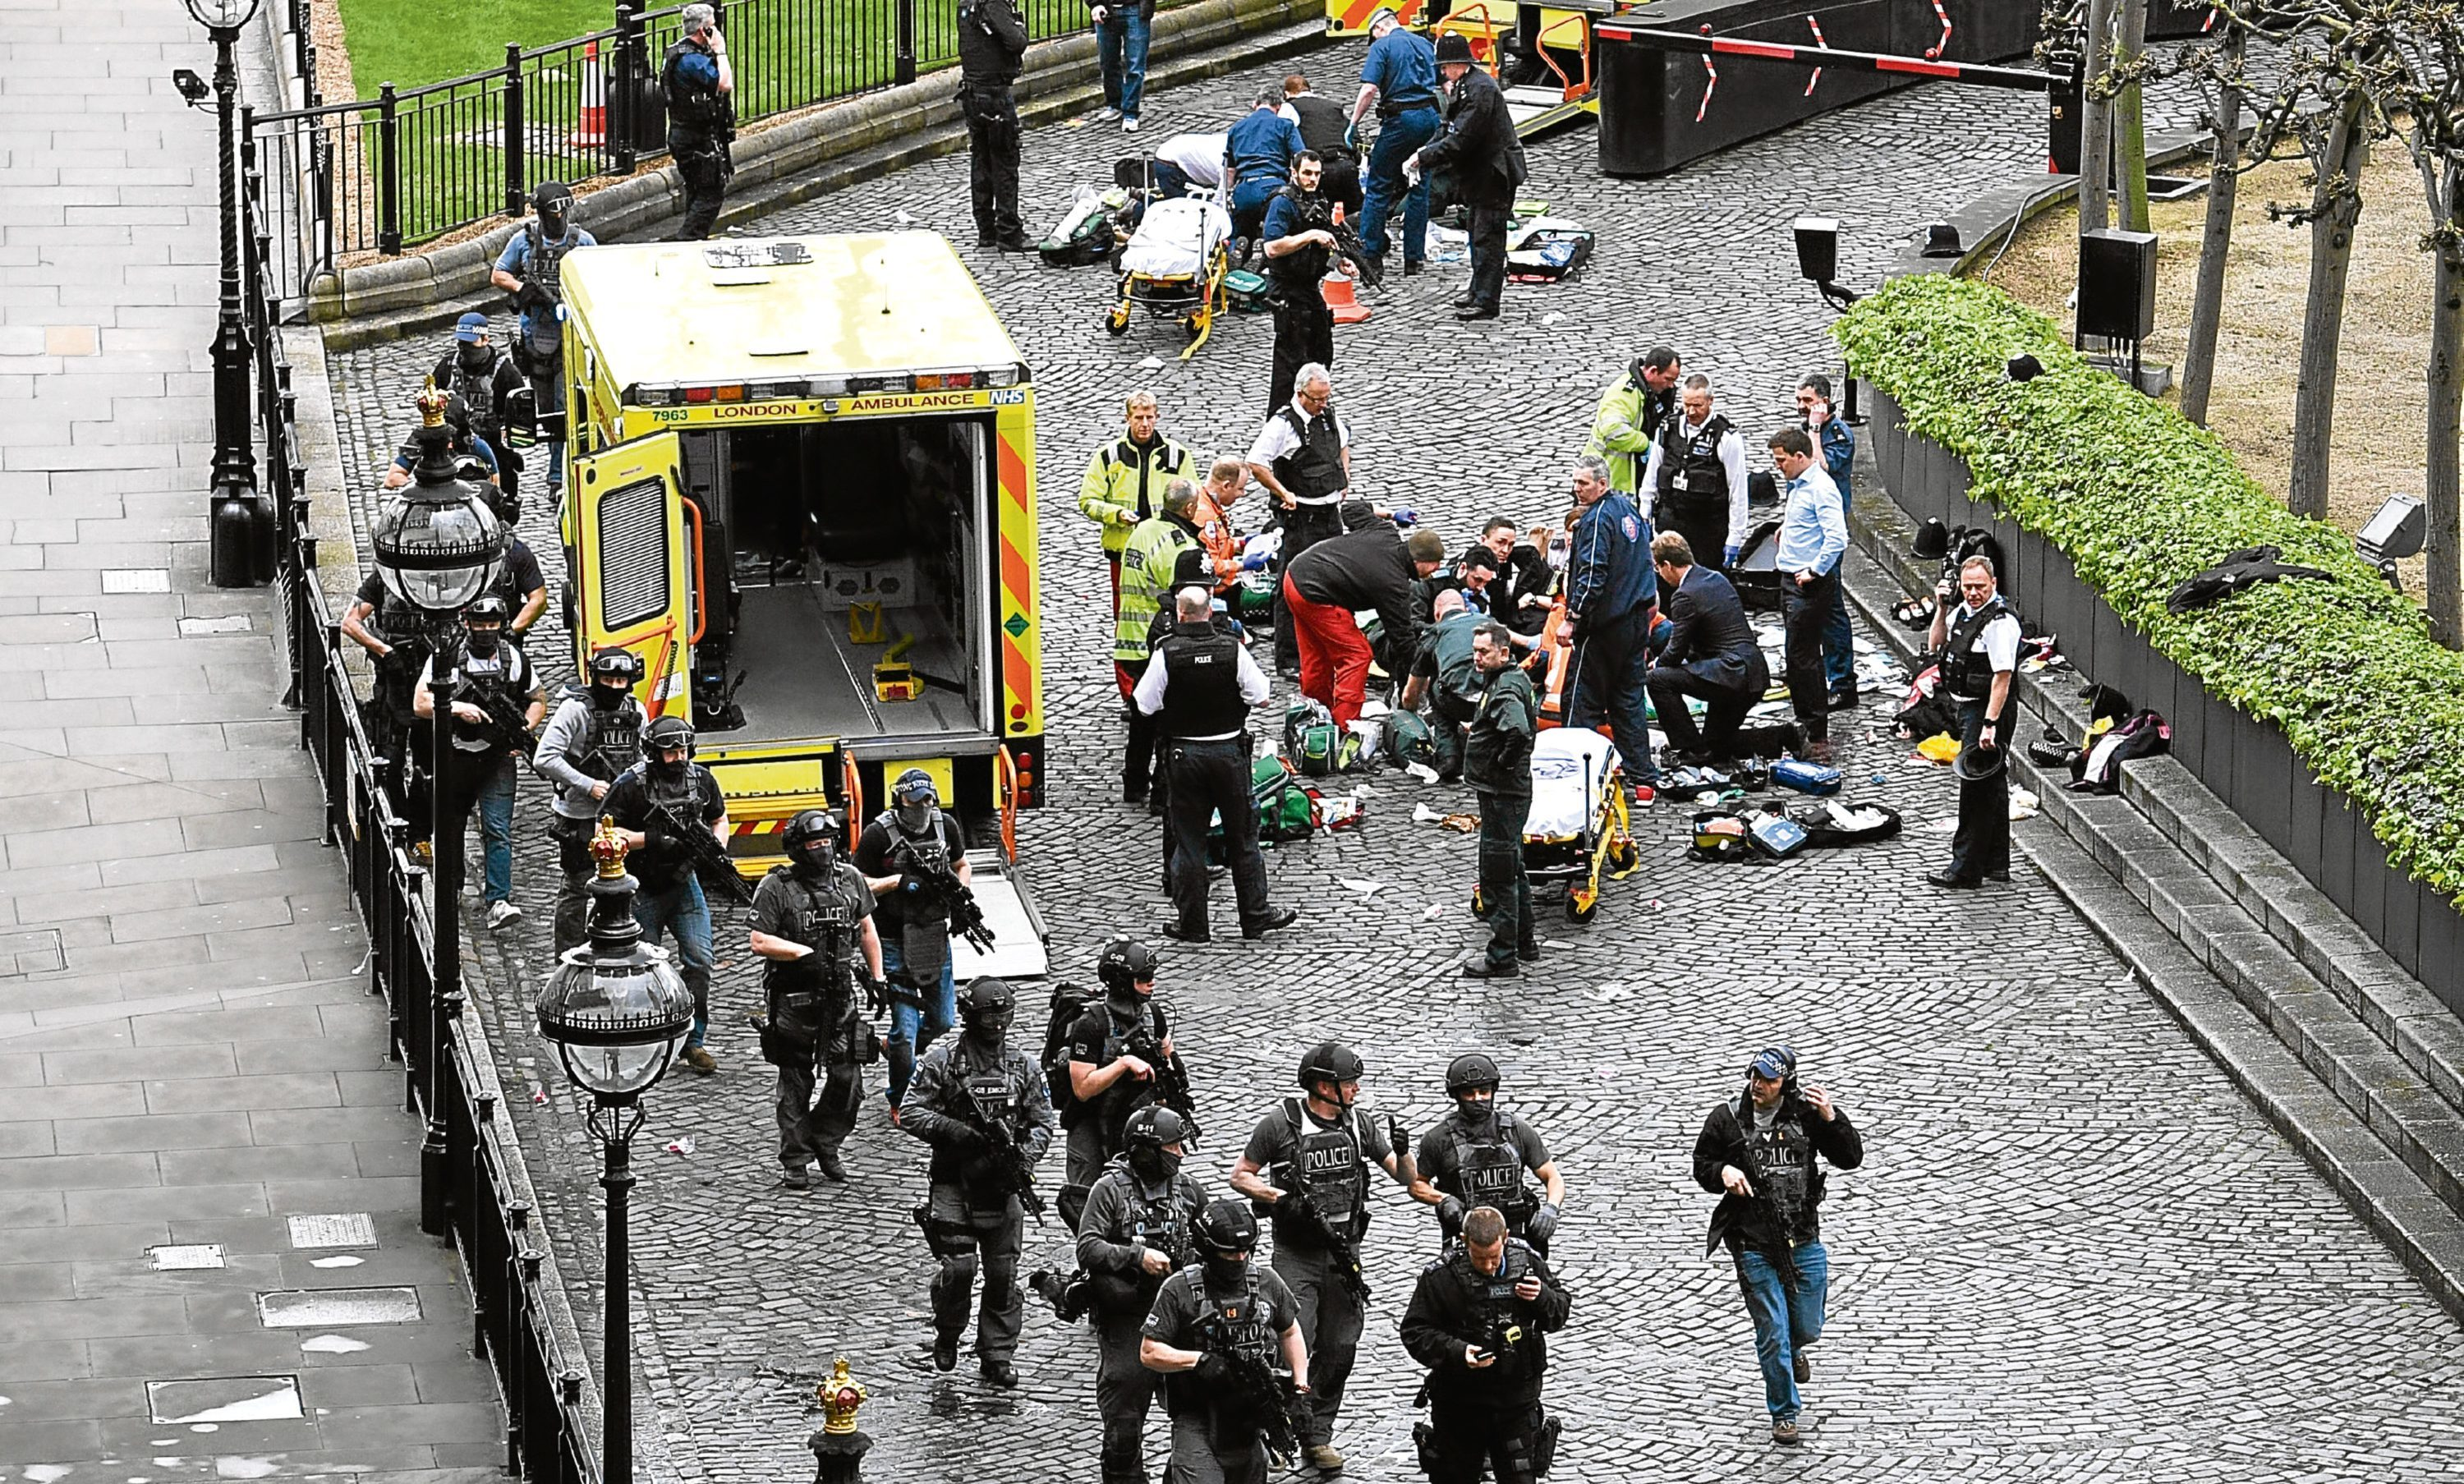 Emergency services at the scene of Wednesday terror attack, which made headlines across the world